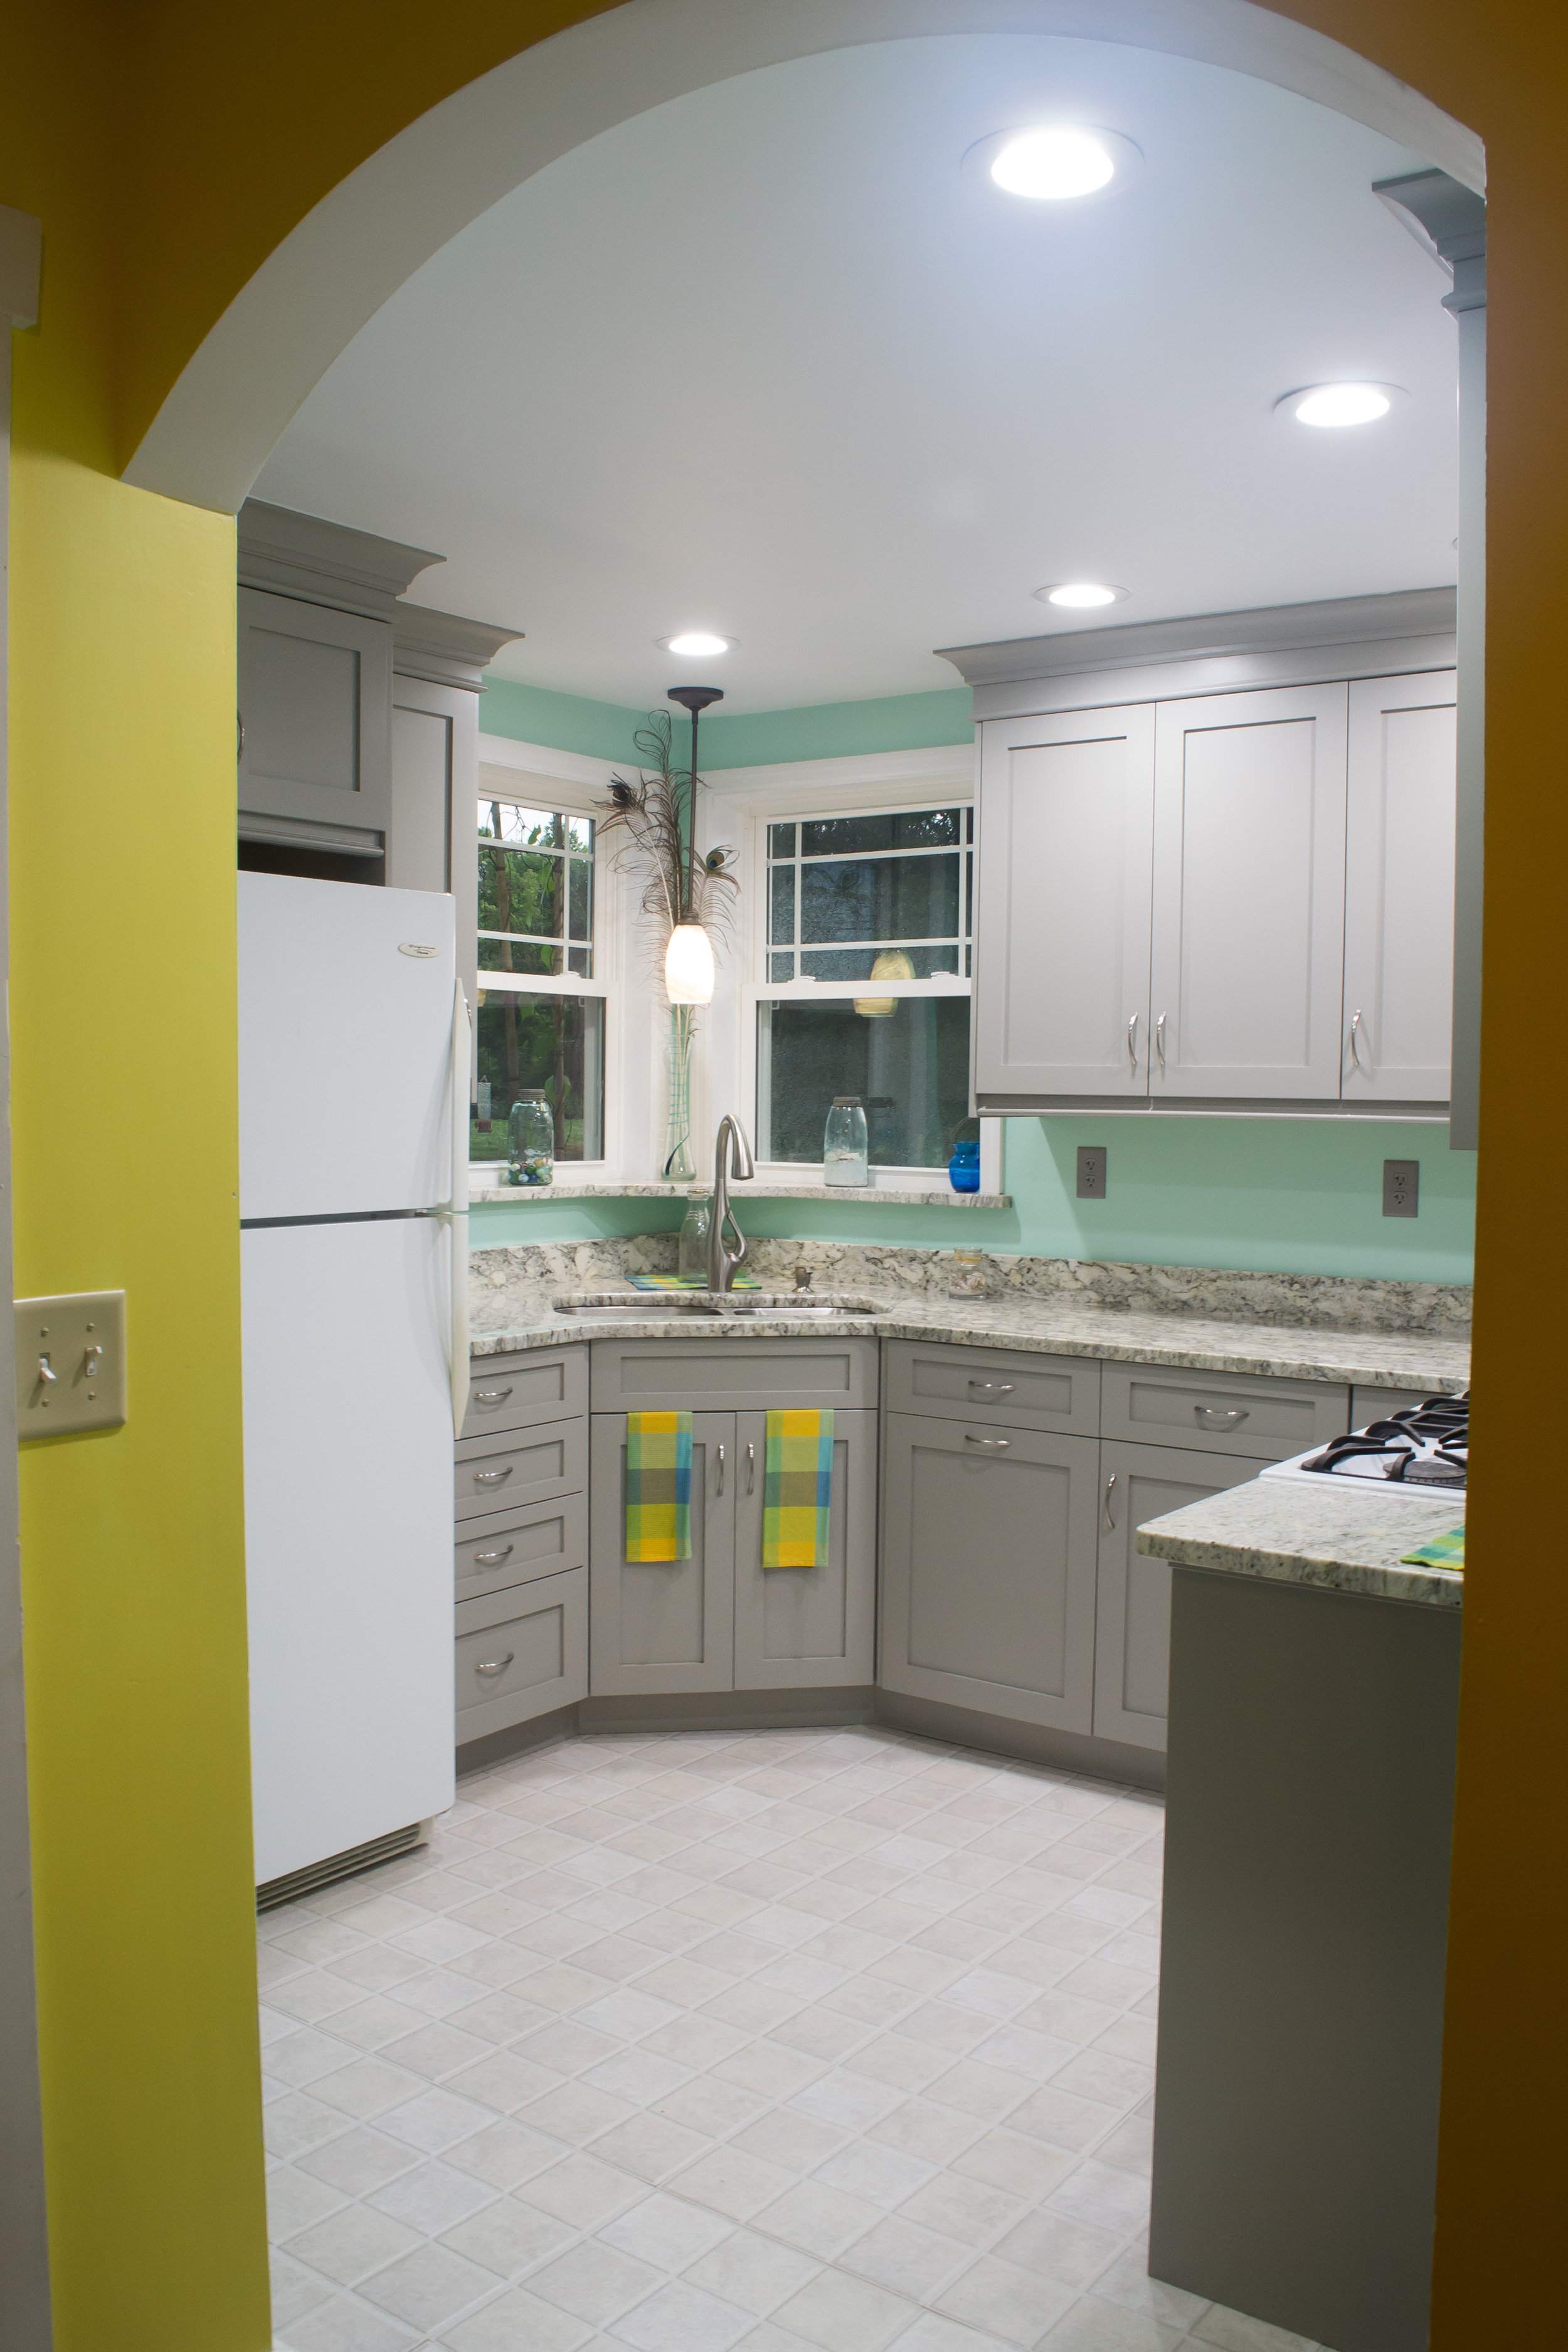 Mitchell grey shaker style kitchen painted cabinets-2.jpg